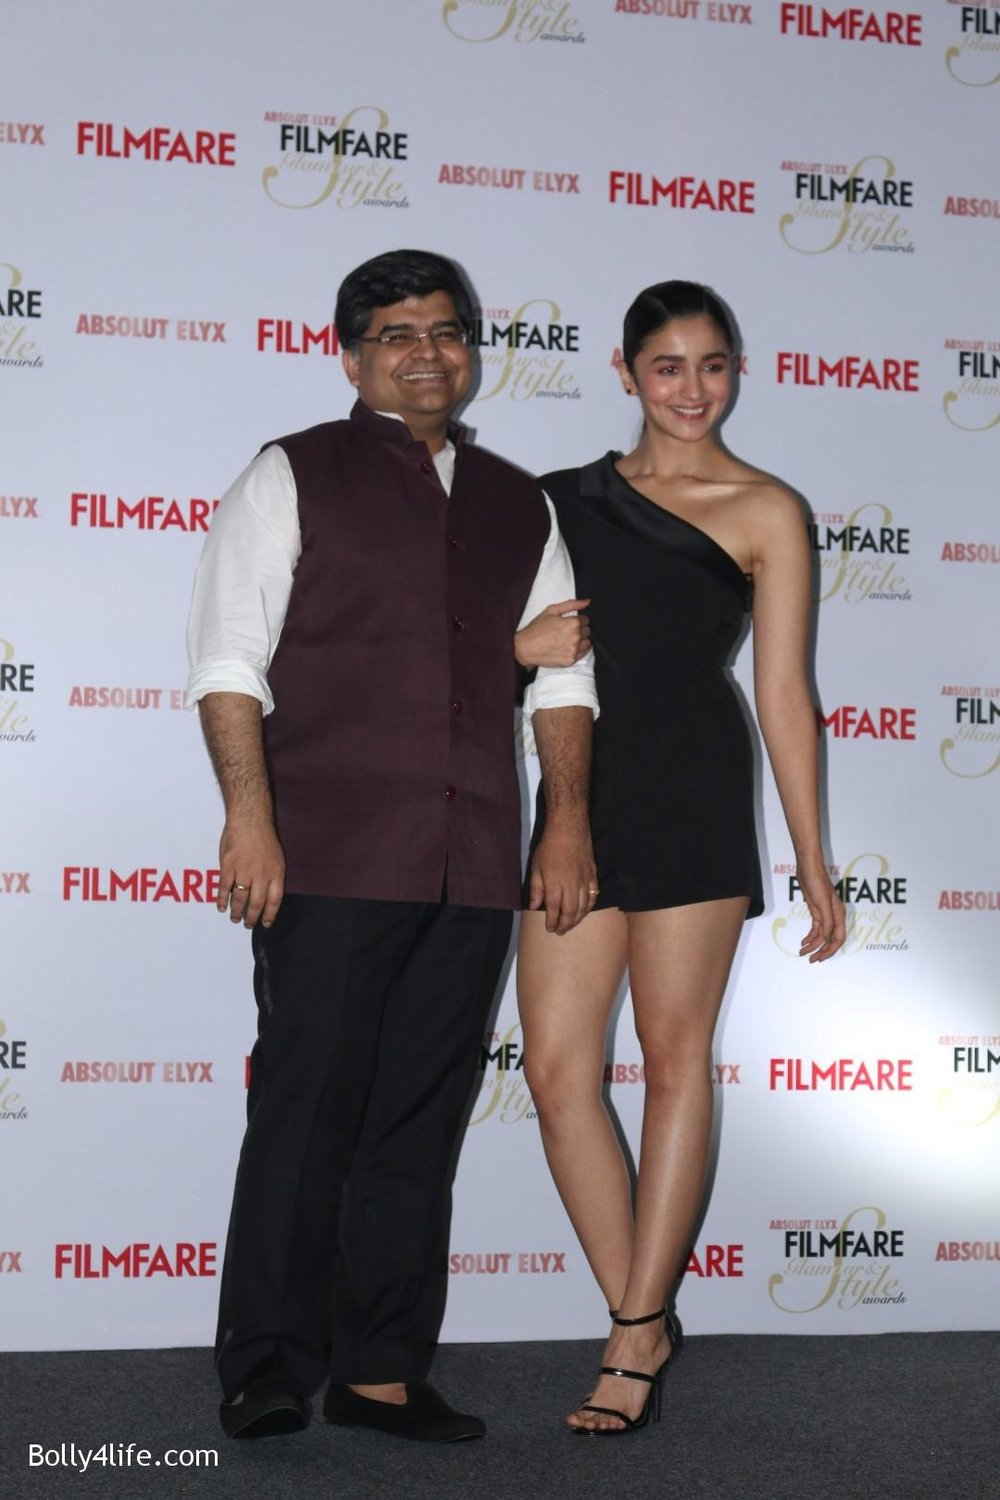 Alia-Bhatt-during-the-Absolut-Elyx-Filmfare-Glamour-and-Style-Awards-cover-launch-41.jpg